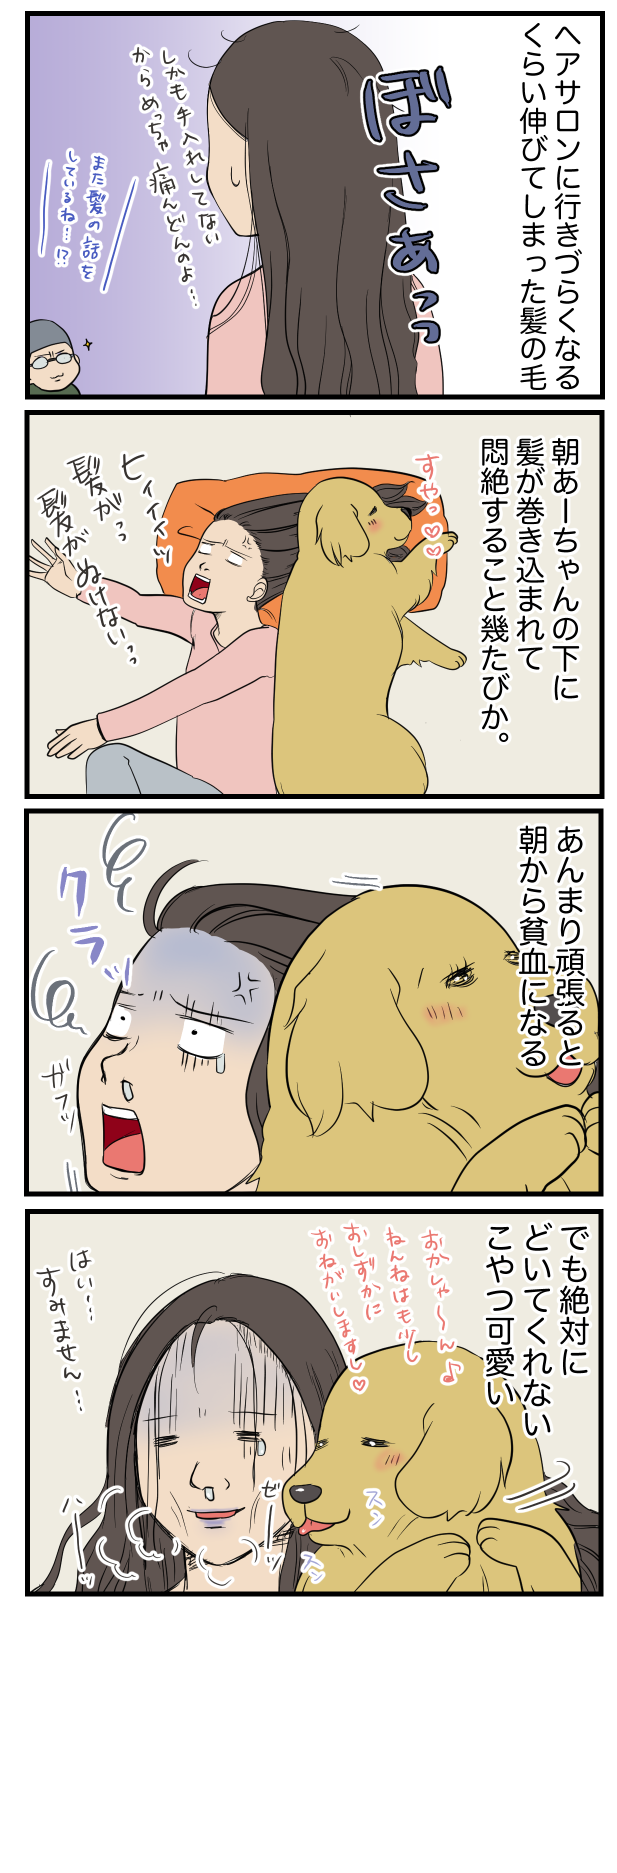 20180419235013a63.png